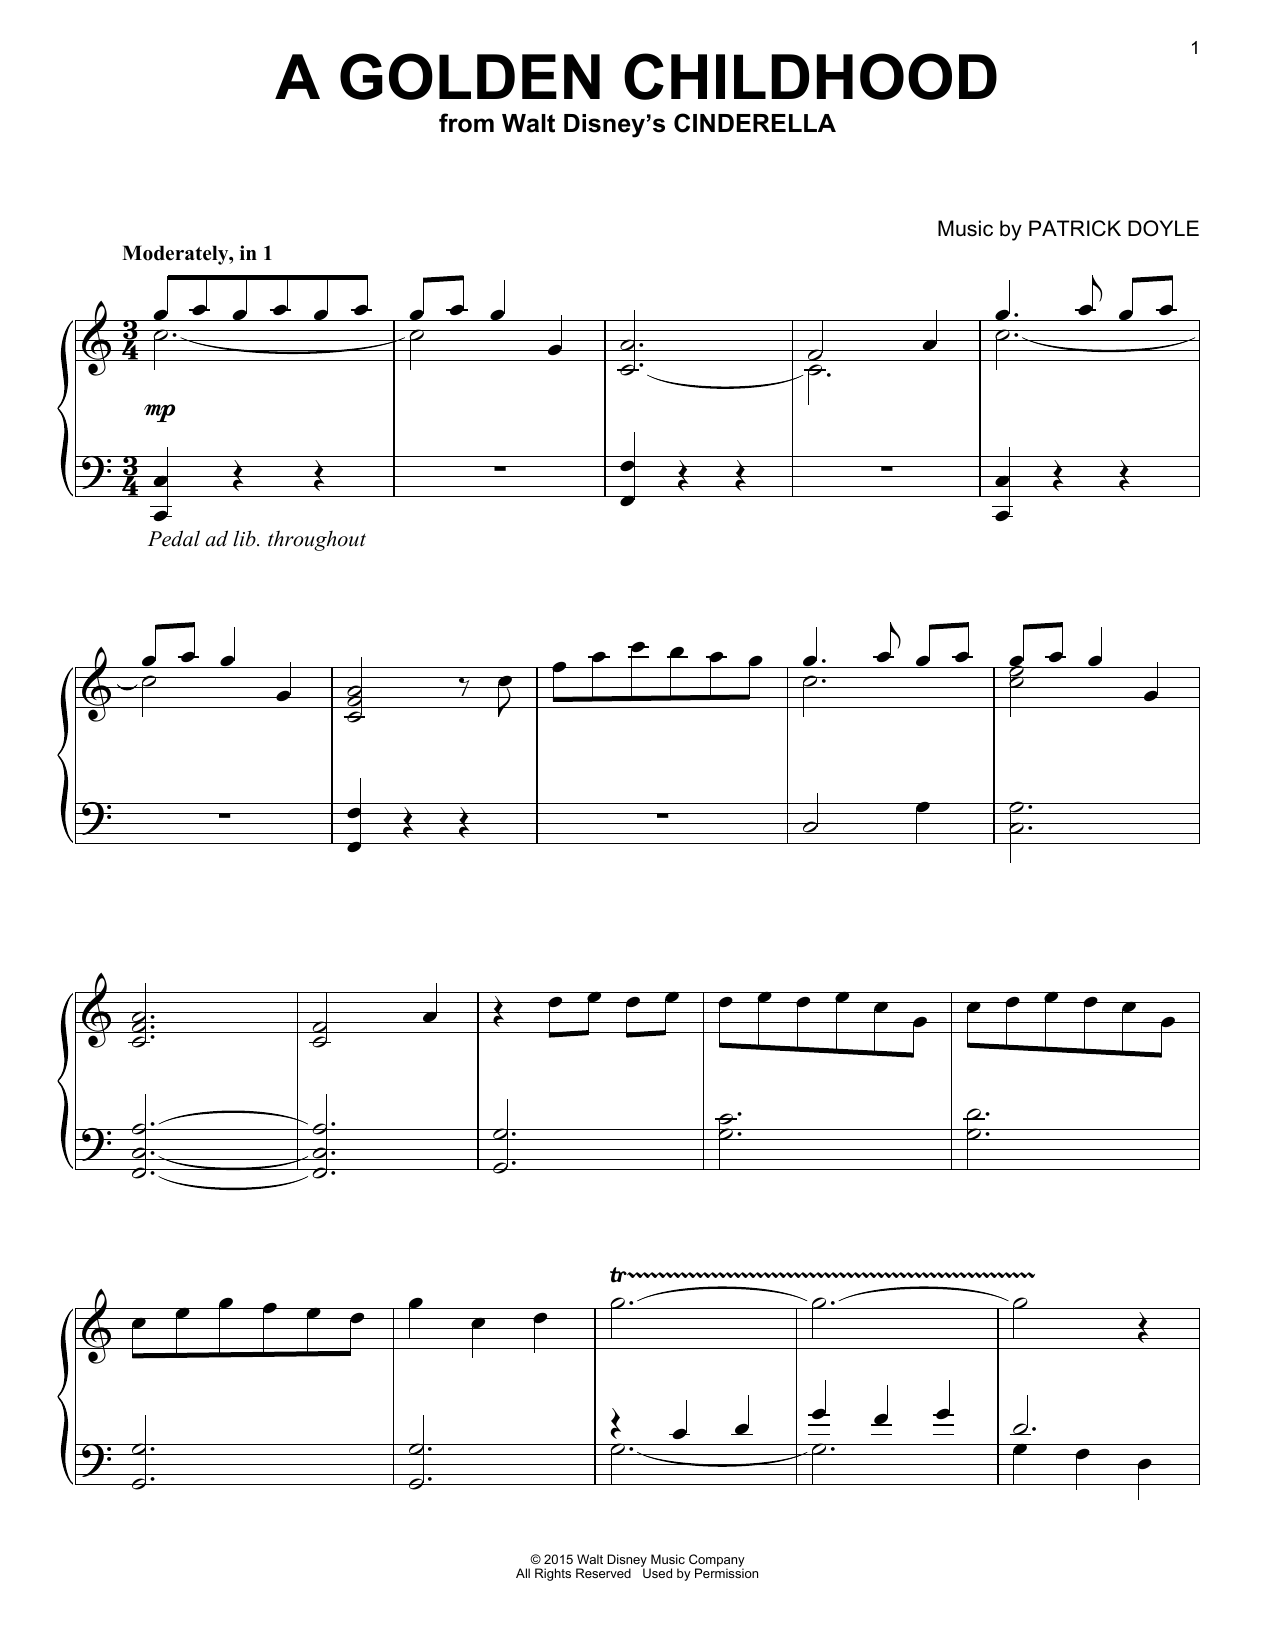 Patrick Doyle A Golden Childhood sheet music notes and chords. Download Printable PDF.